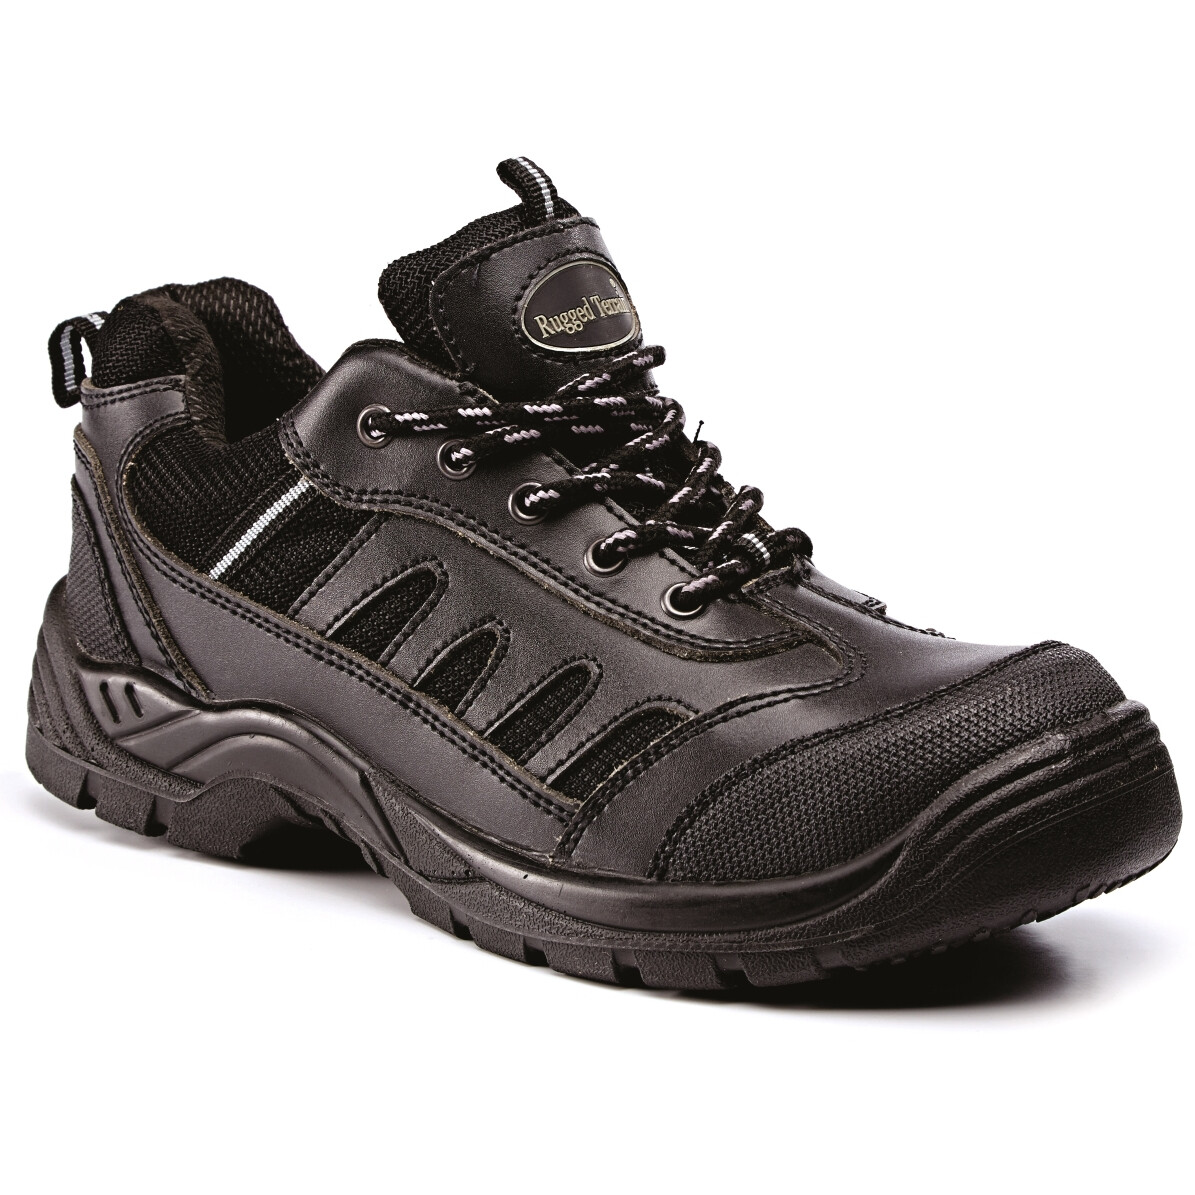 Rugged Terrain RT508B Leather Safety Trainer SBP SRC - Black - Size 7 - Clearance Size